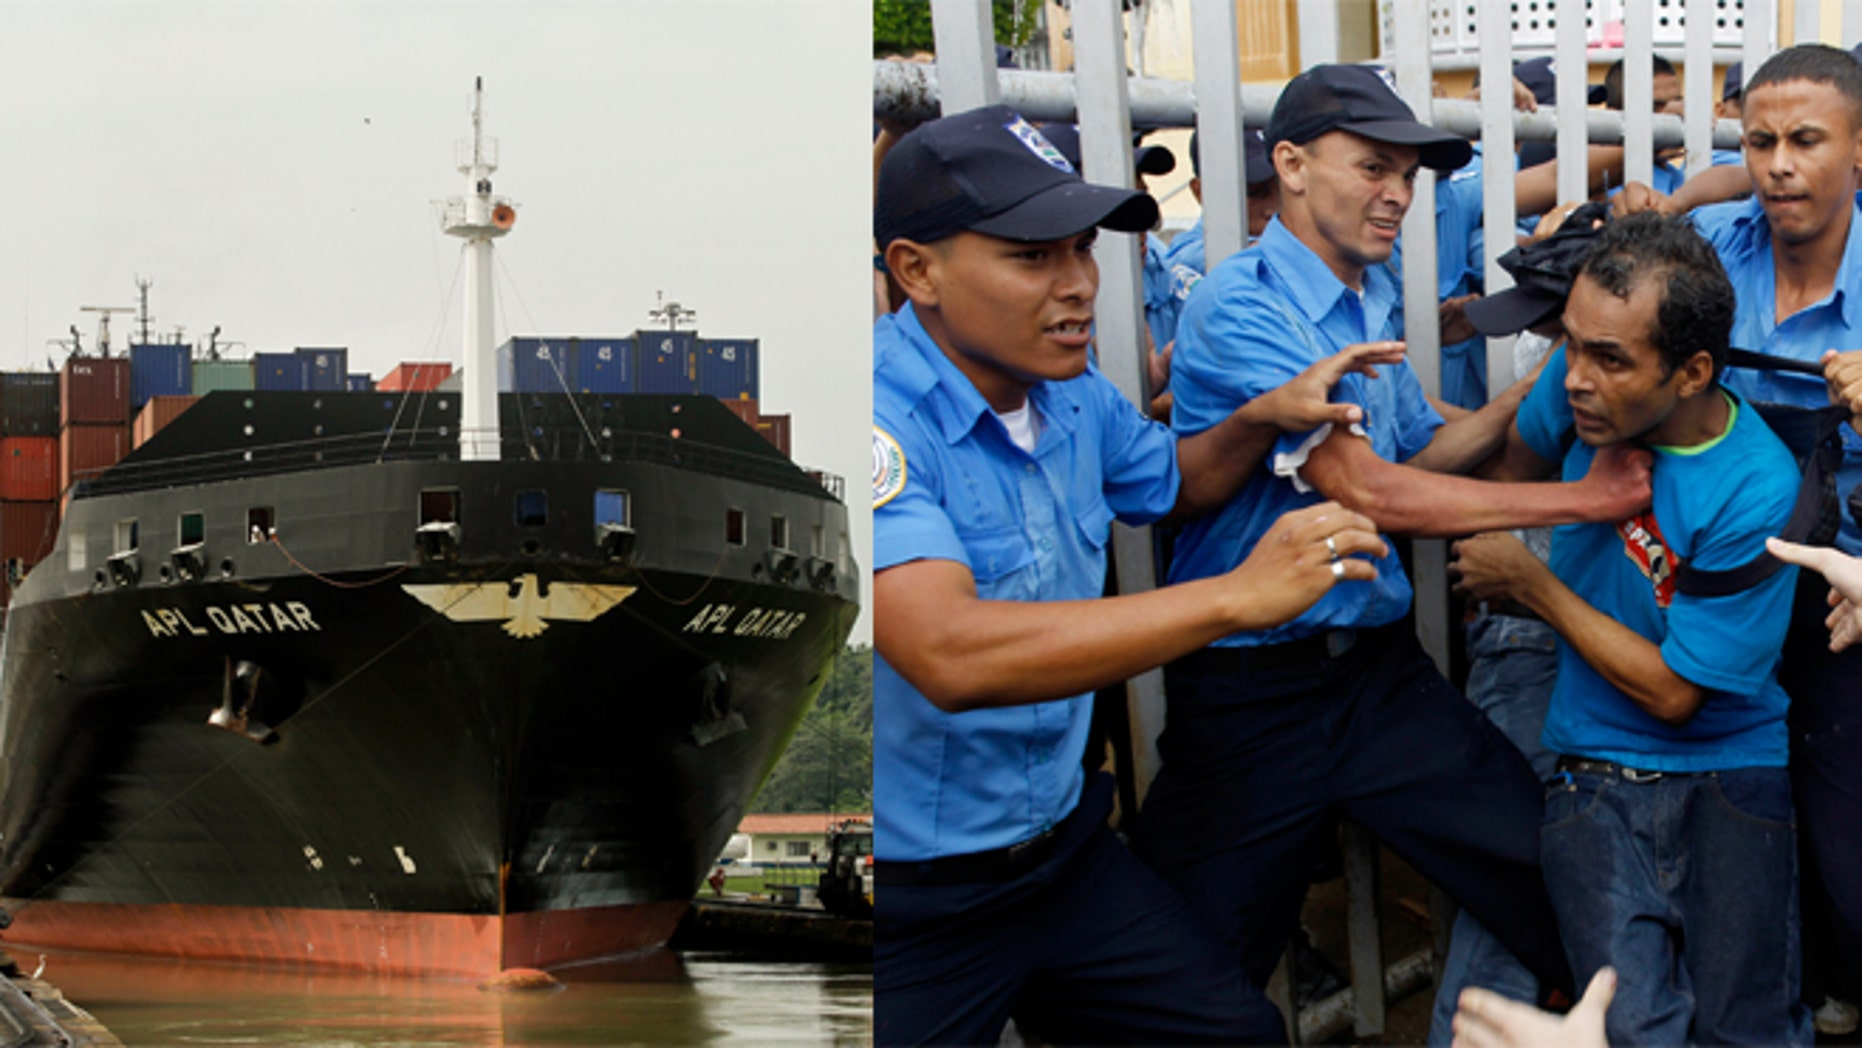 Panama Canal pictured on the left. On the right, Anti-government demonstrators scuffle with police officers in front of Nicaragua's National Assembly during a protest against the project to build an inter-oceanic canal in the country in Managua, Nicaragua, Thursday, June 13, 2013.